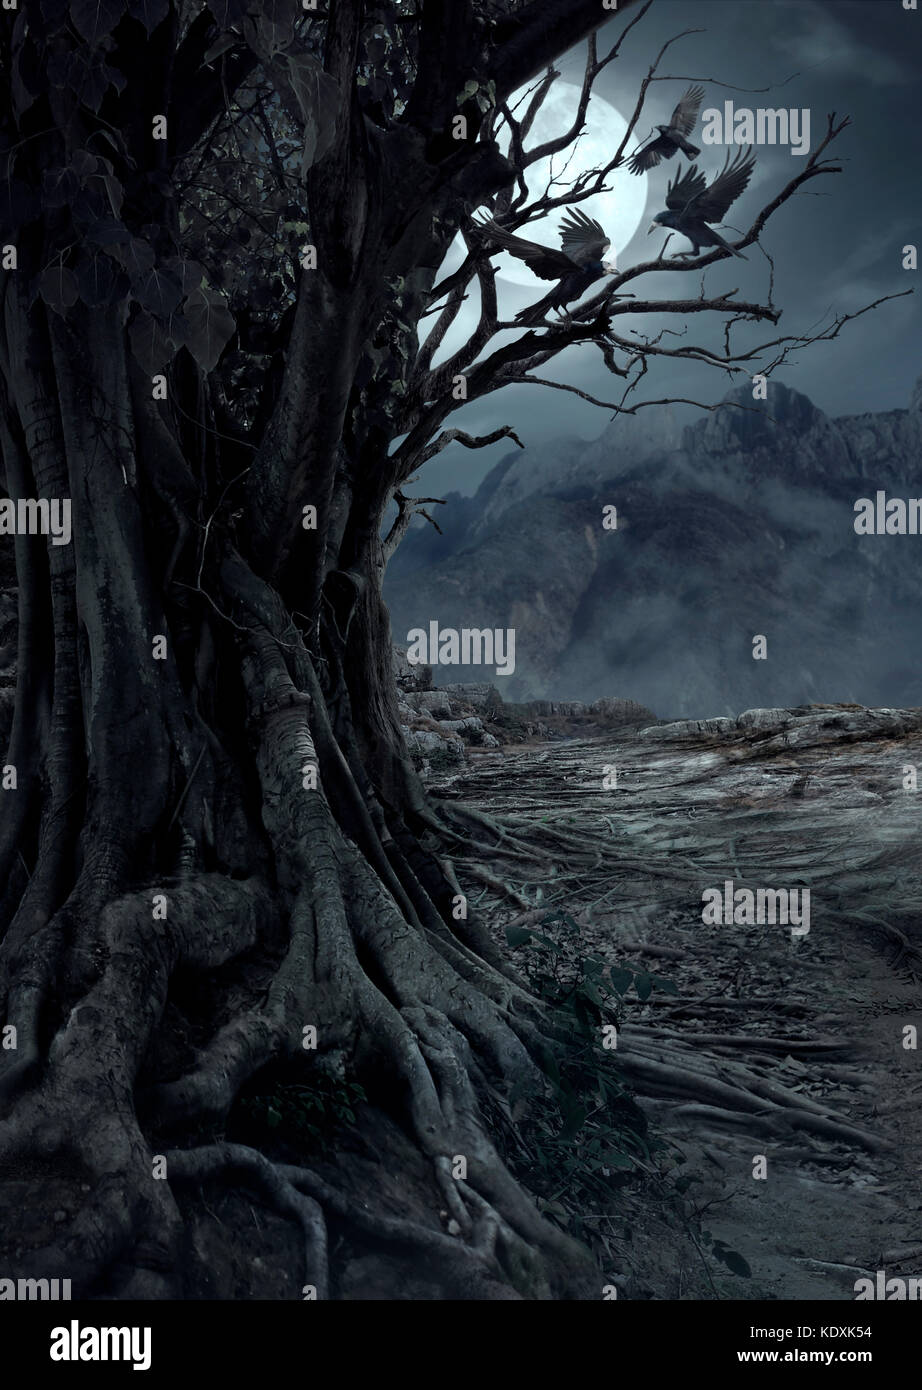 Scary dead tree, night in the mysterious forest with moon light and three crows - Stock Image